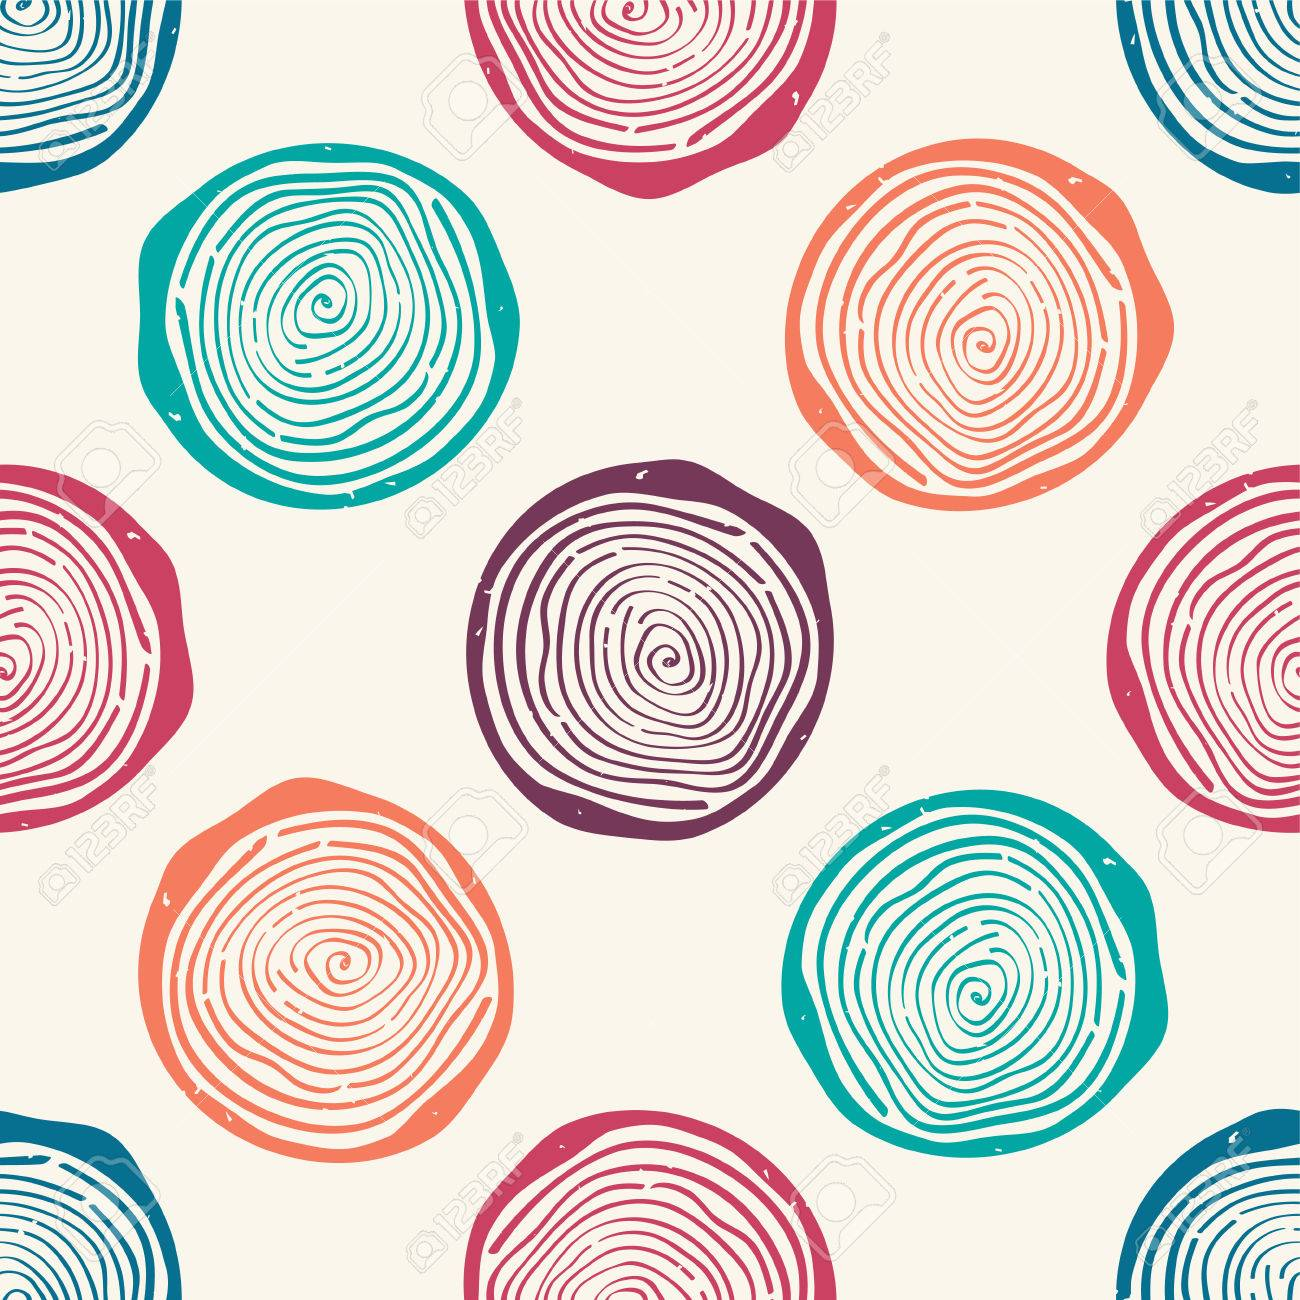 Vector grunge seamless pattern with tree rings. Modern rustic design. - 55723234